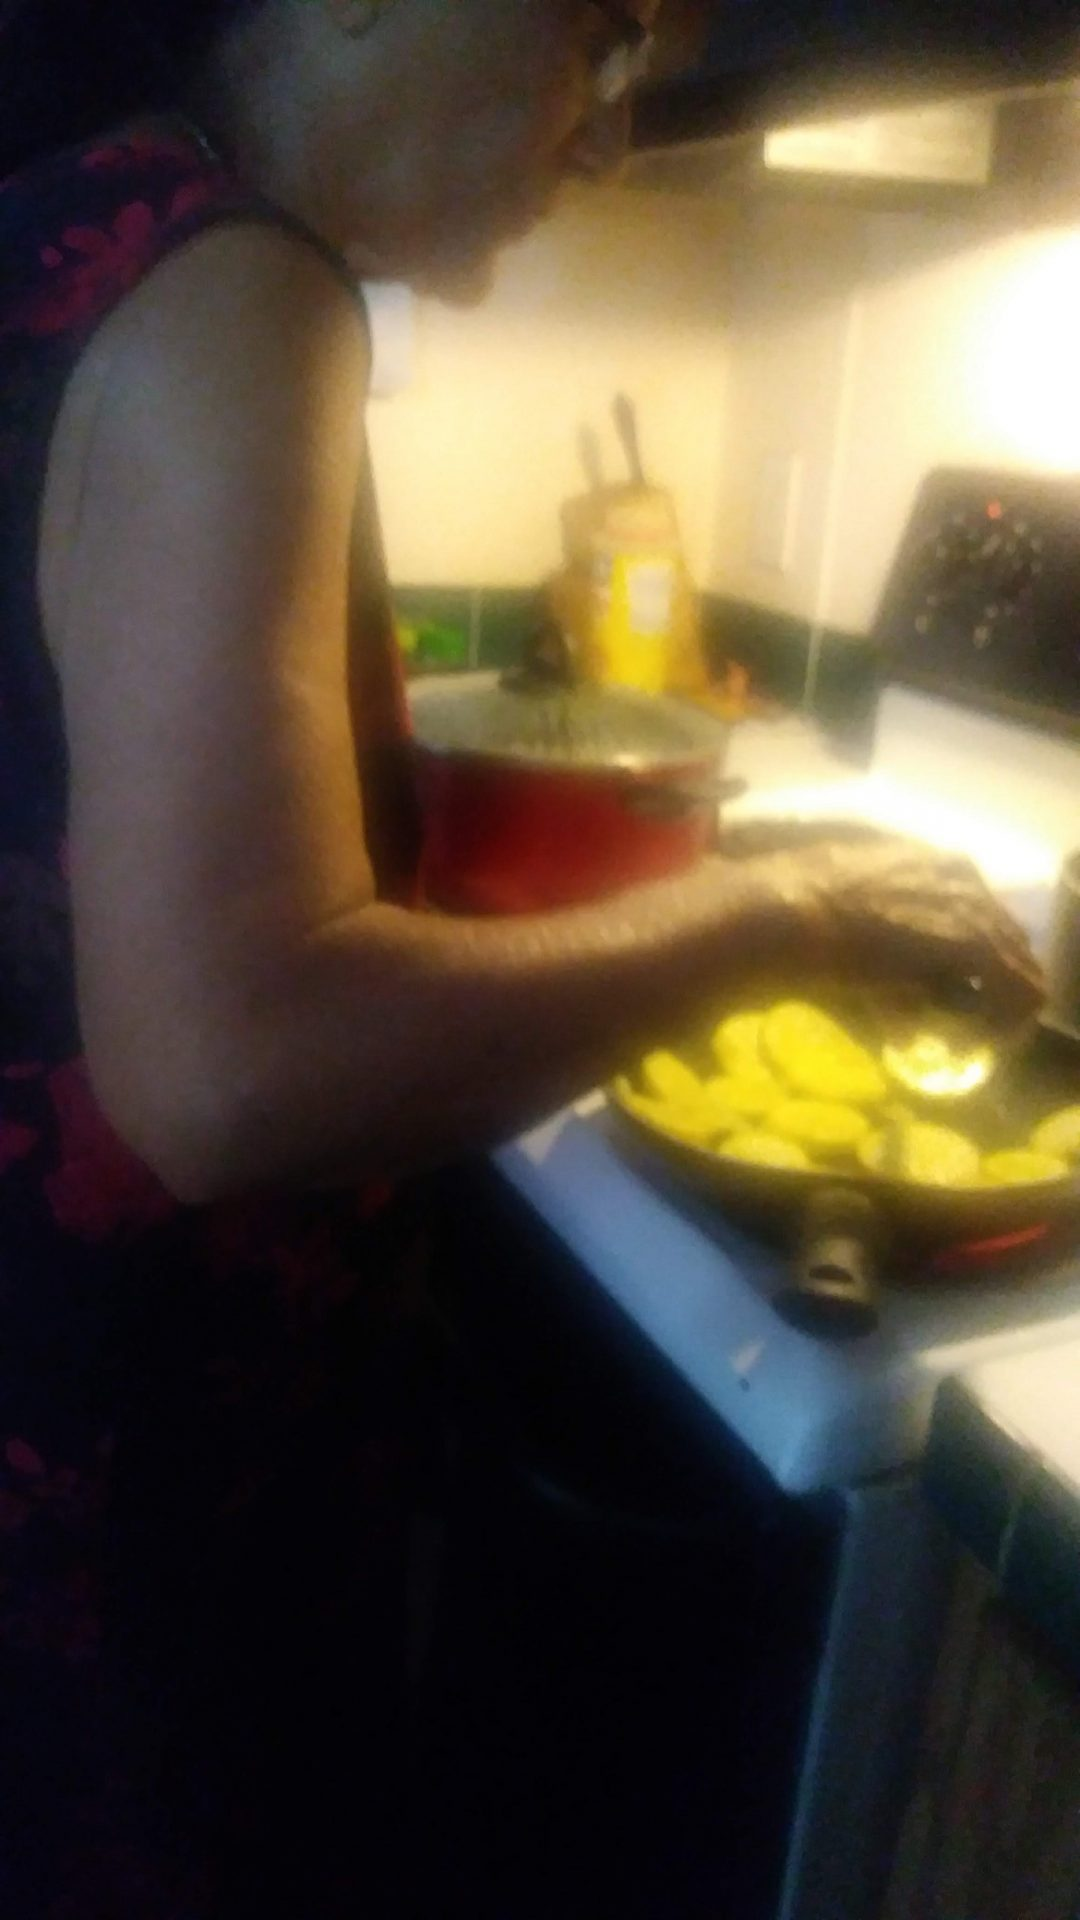 Miss those hands always serving up something with love and sabor. Just miss your whole essence. Now & forever. ='( <\3